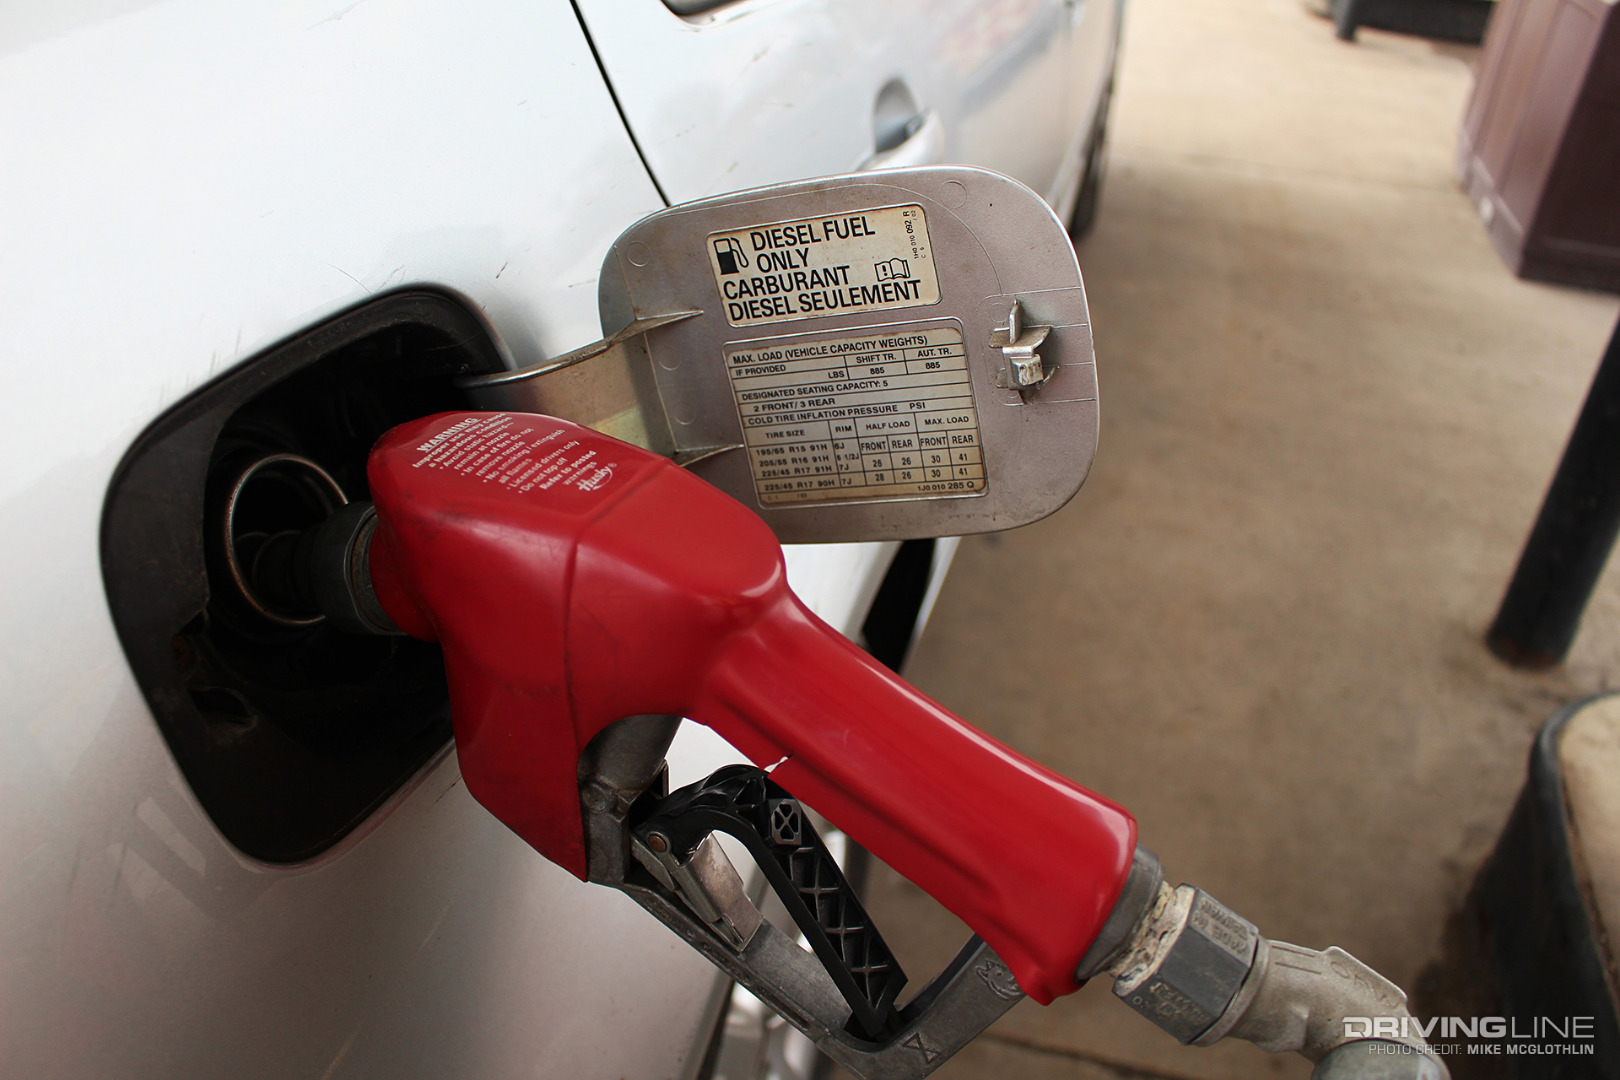 Nightmare Scenario: What to Do if Gas is Put in Your Diesel